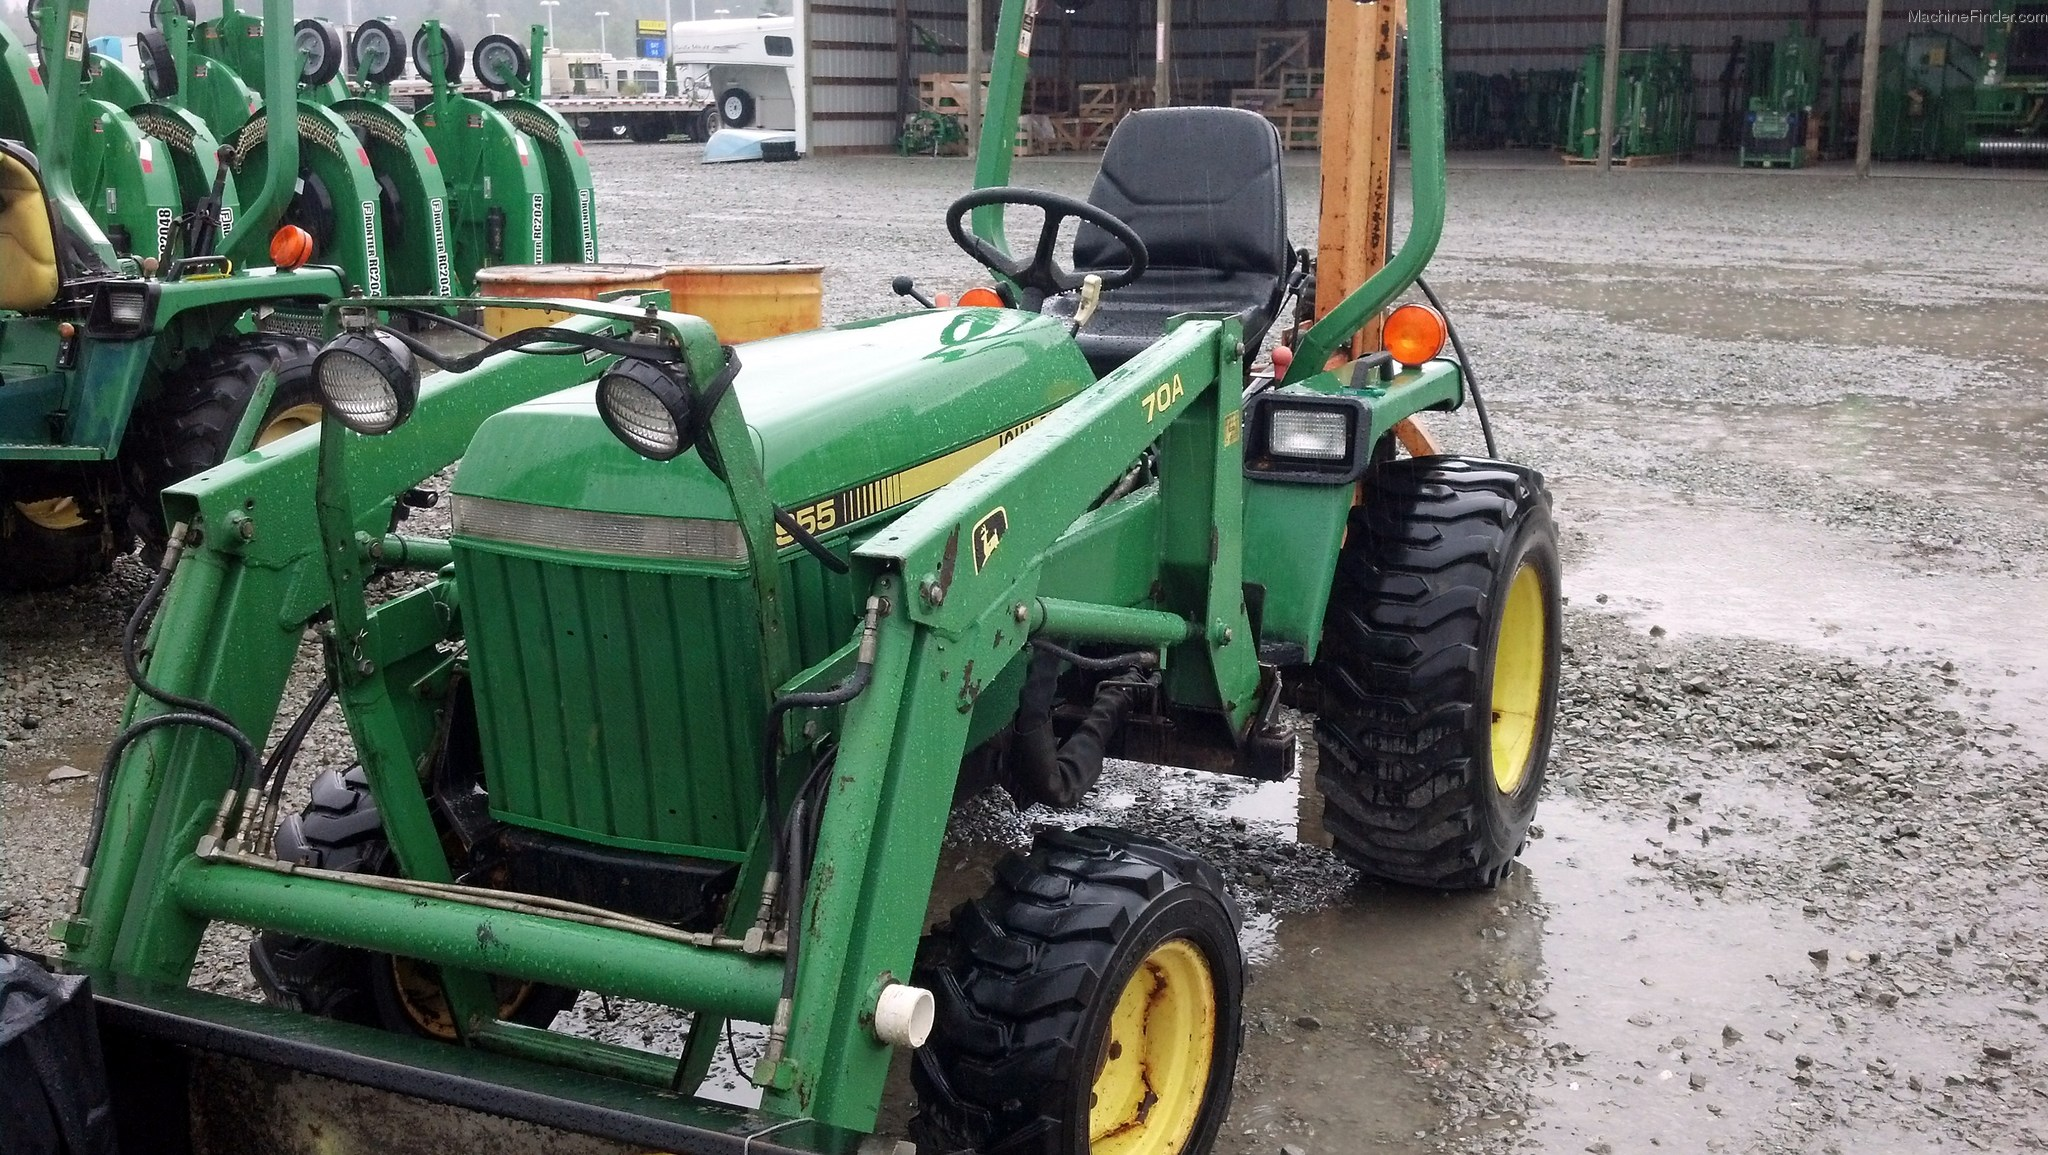 Farm Equipment For Sale In Alberta >> John Deere 70a Loader Manual | John Deere Manuals: John ...